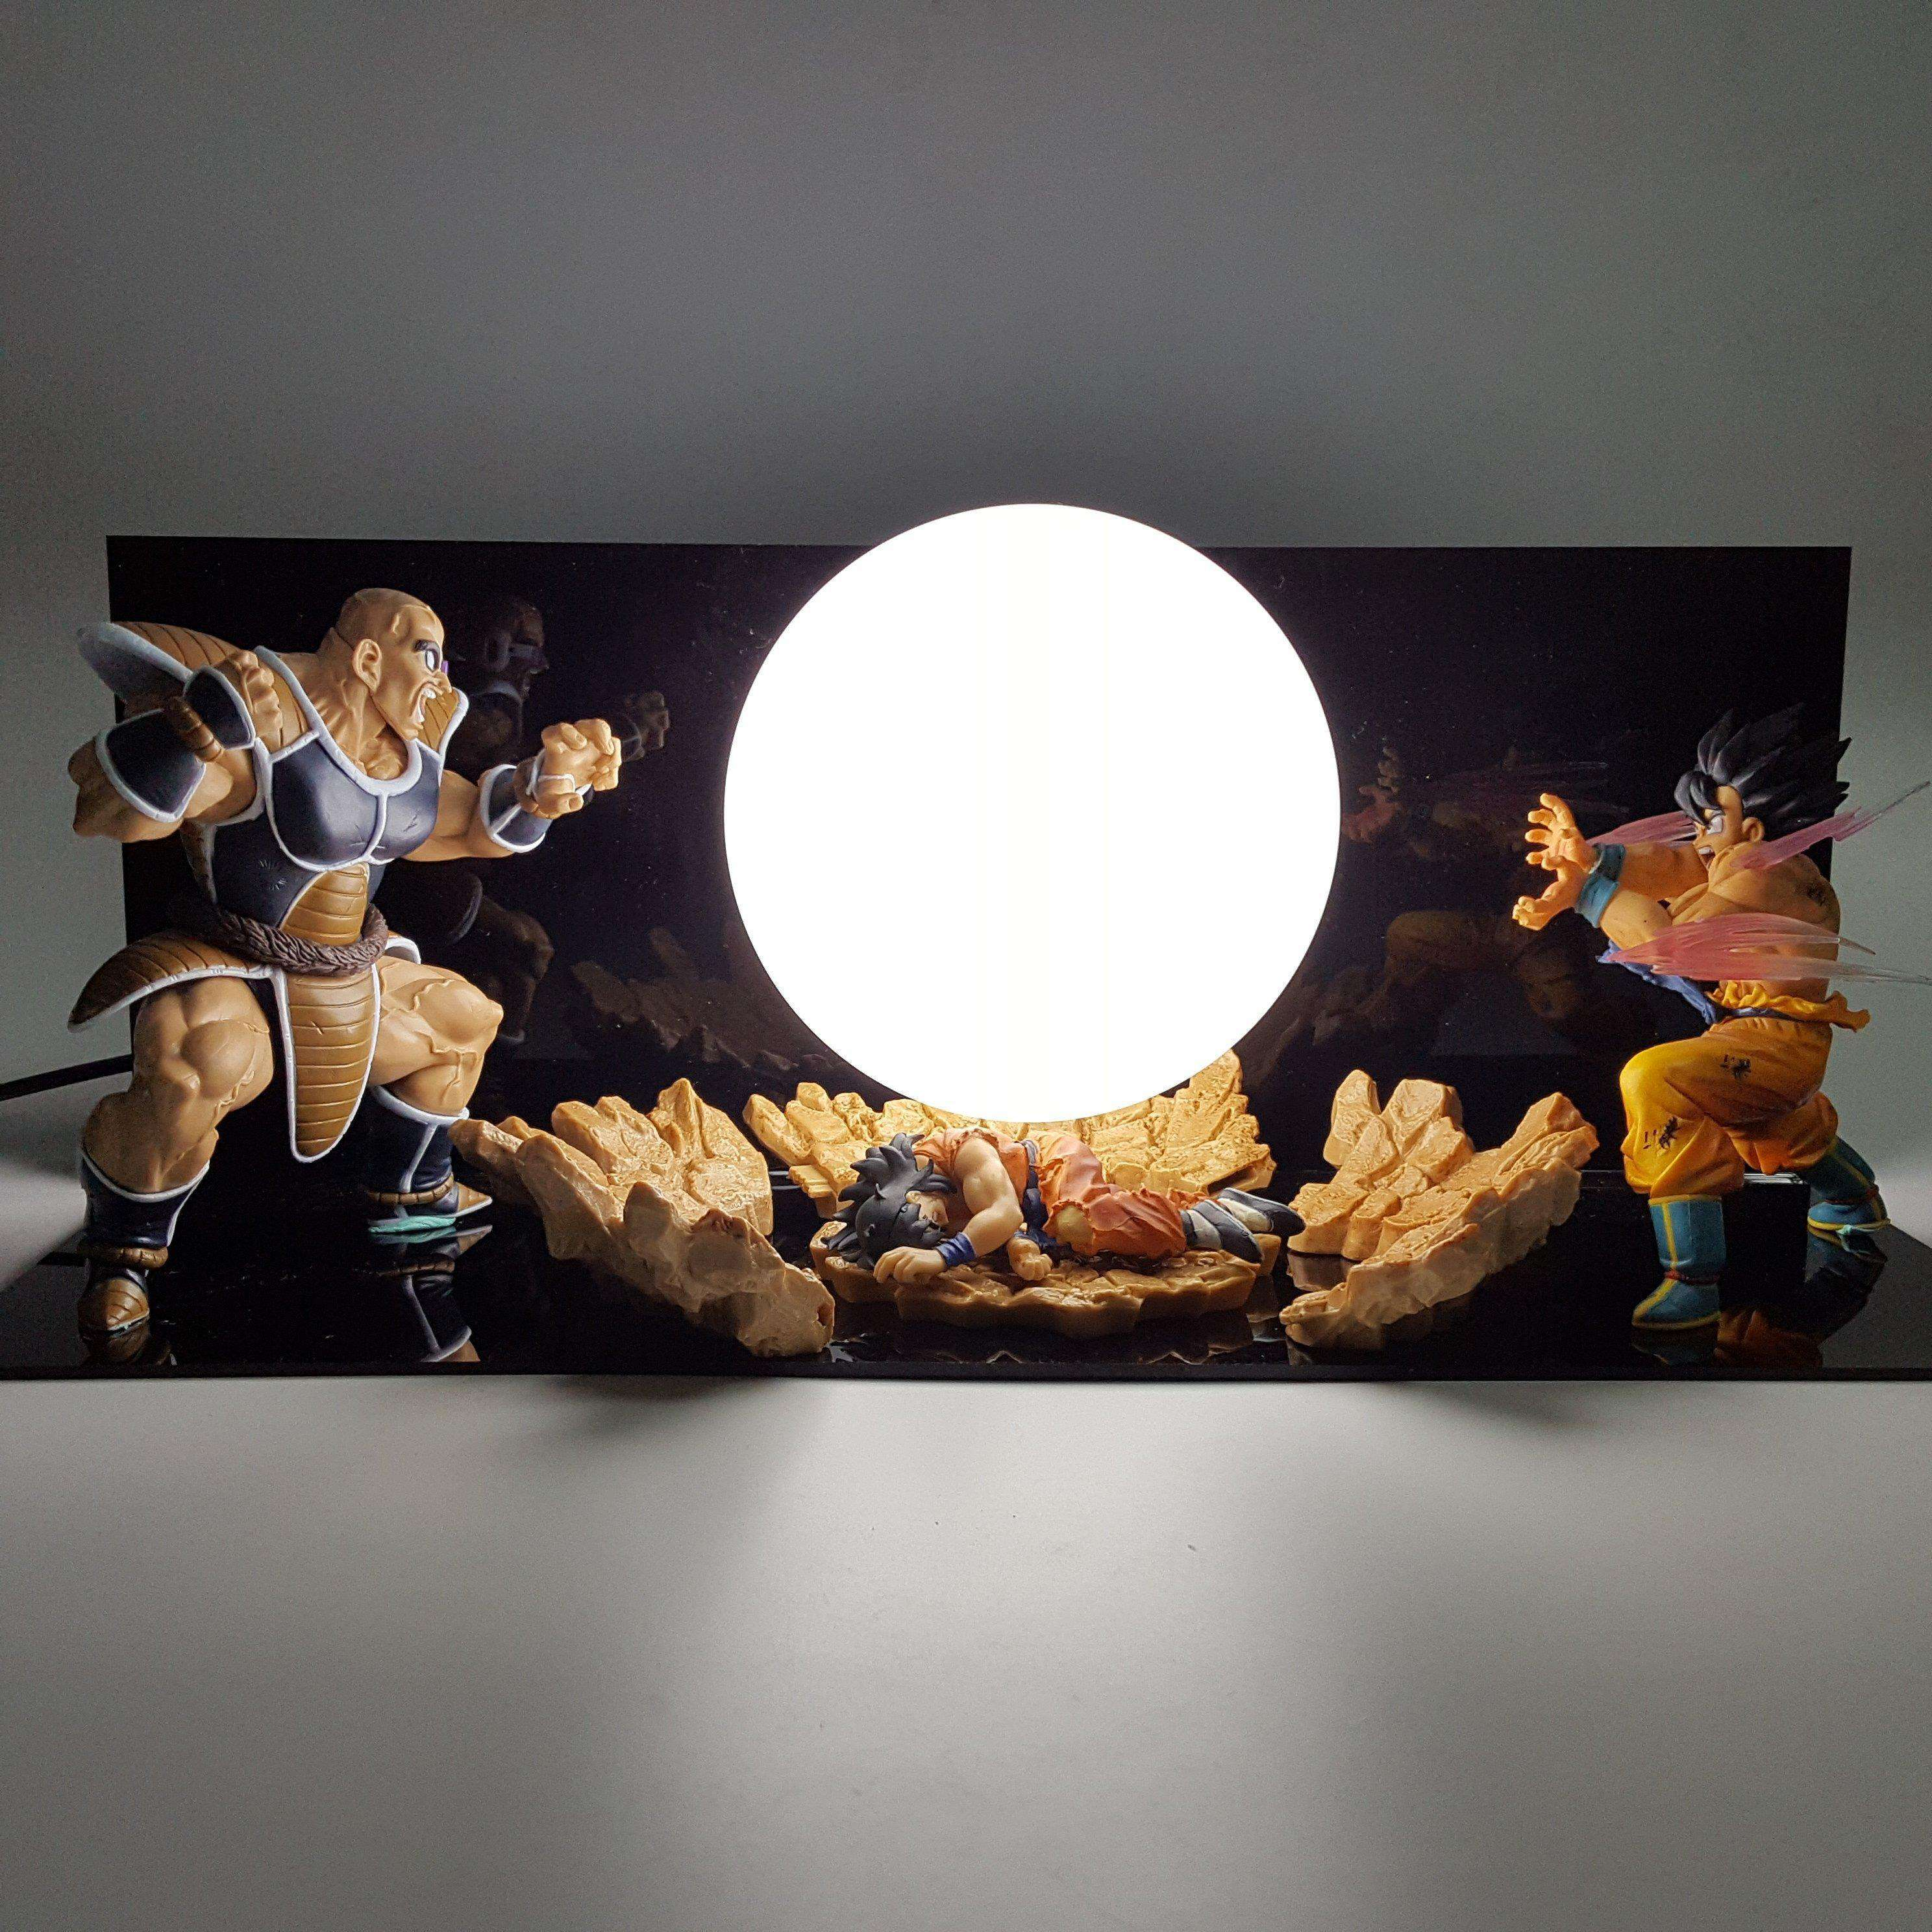 Lampes - Lampe Dragon Ball Z Goku Vs Nappa